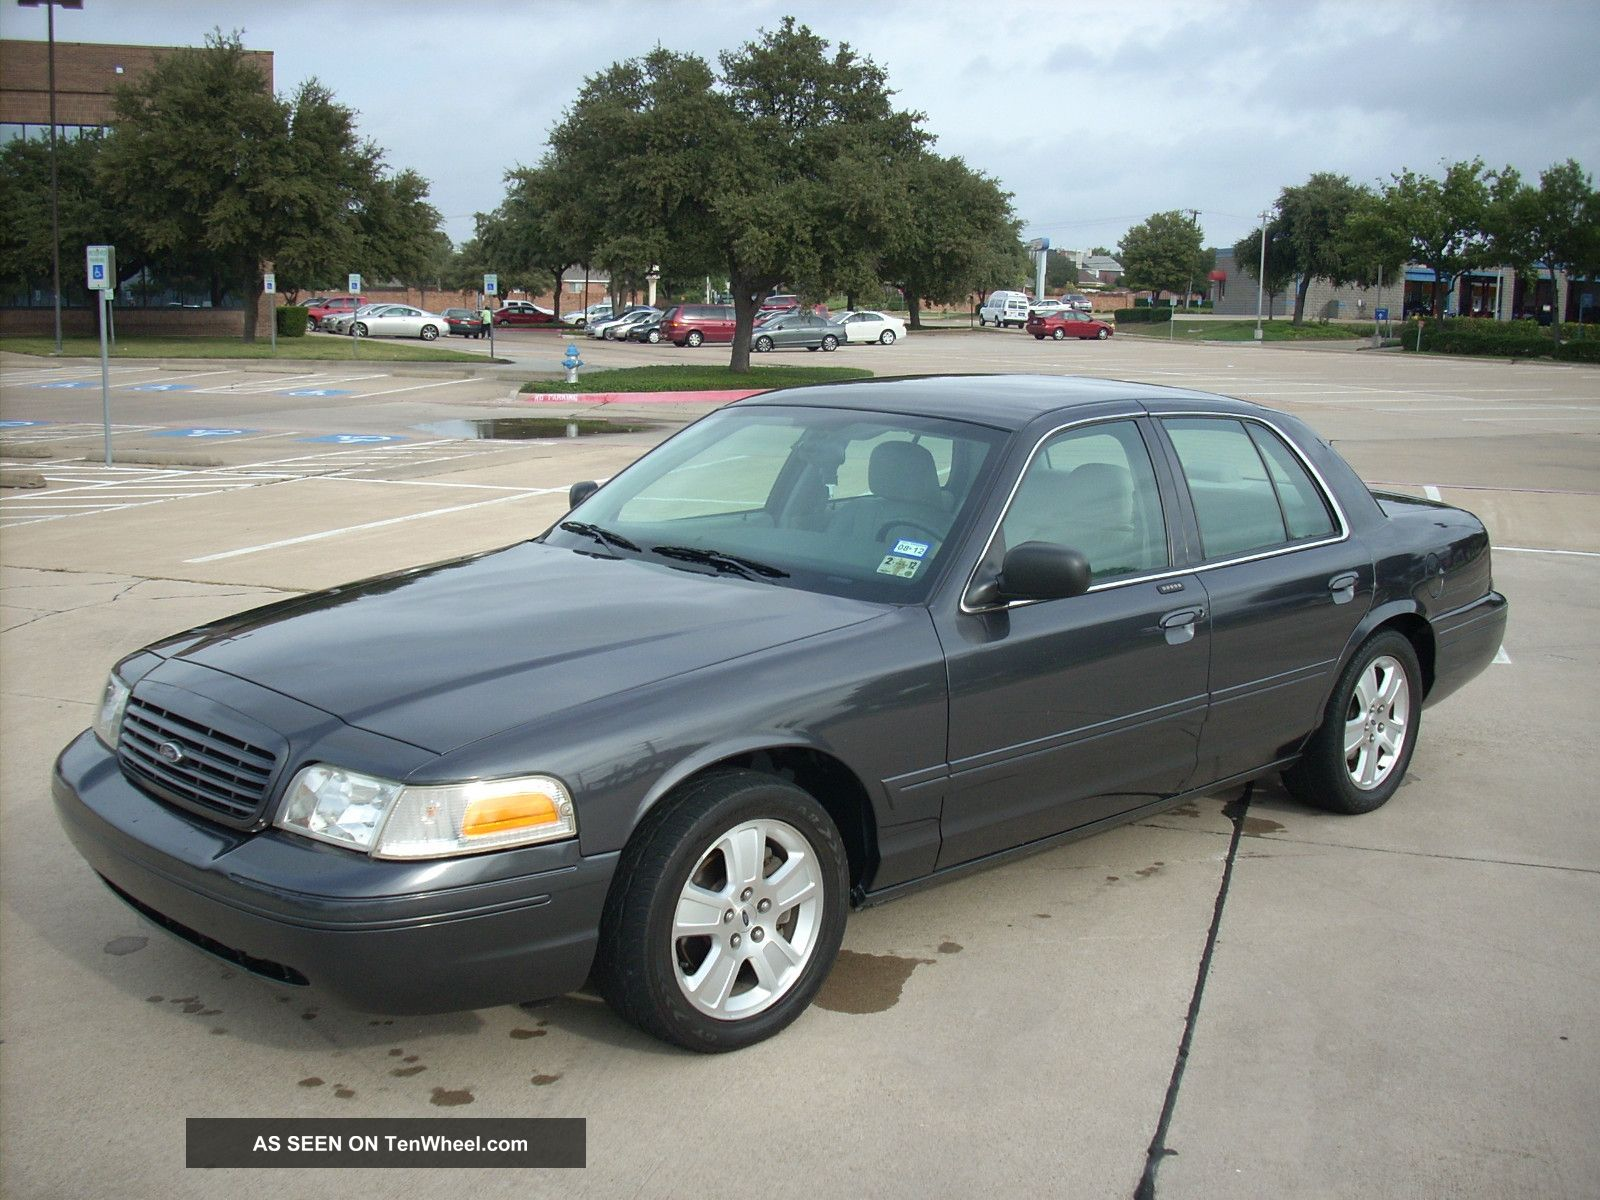 2004 Ford Crown Victoria Lx Sport Not A Police Car